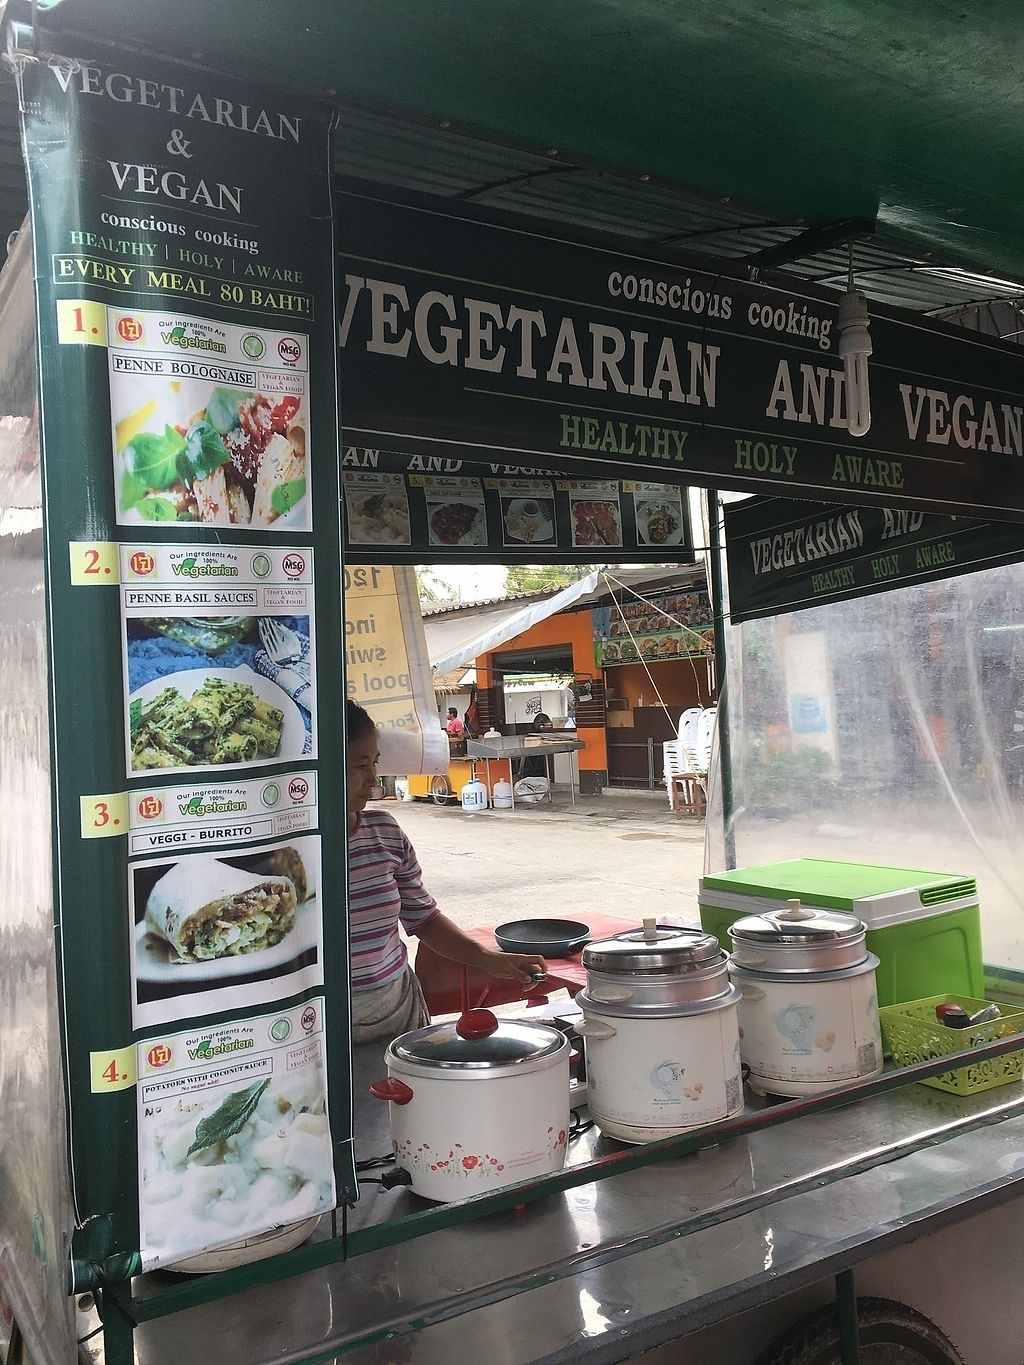 "Photo of Vegan Food Stall  by <a href=""/members/profile/vagabonding2018"">vagabonding2018</a> <br/>Food Stall from Front <br/> April 17, 2018  - <a href='/contact/abuse/image/117115/387084'>Report</a>"